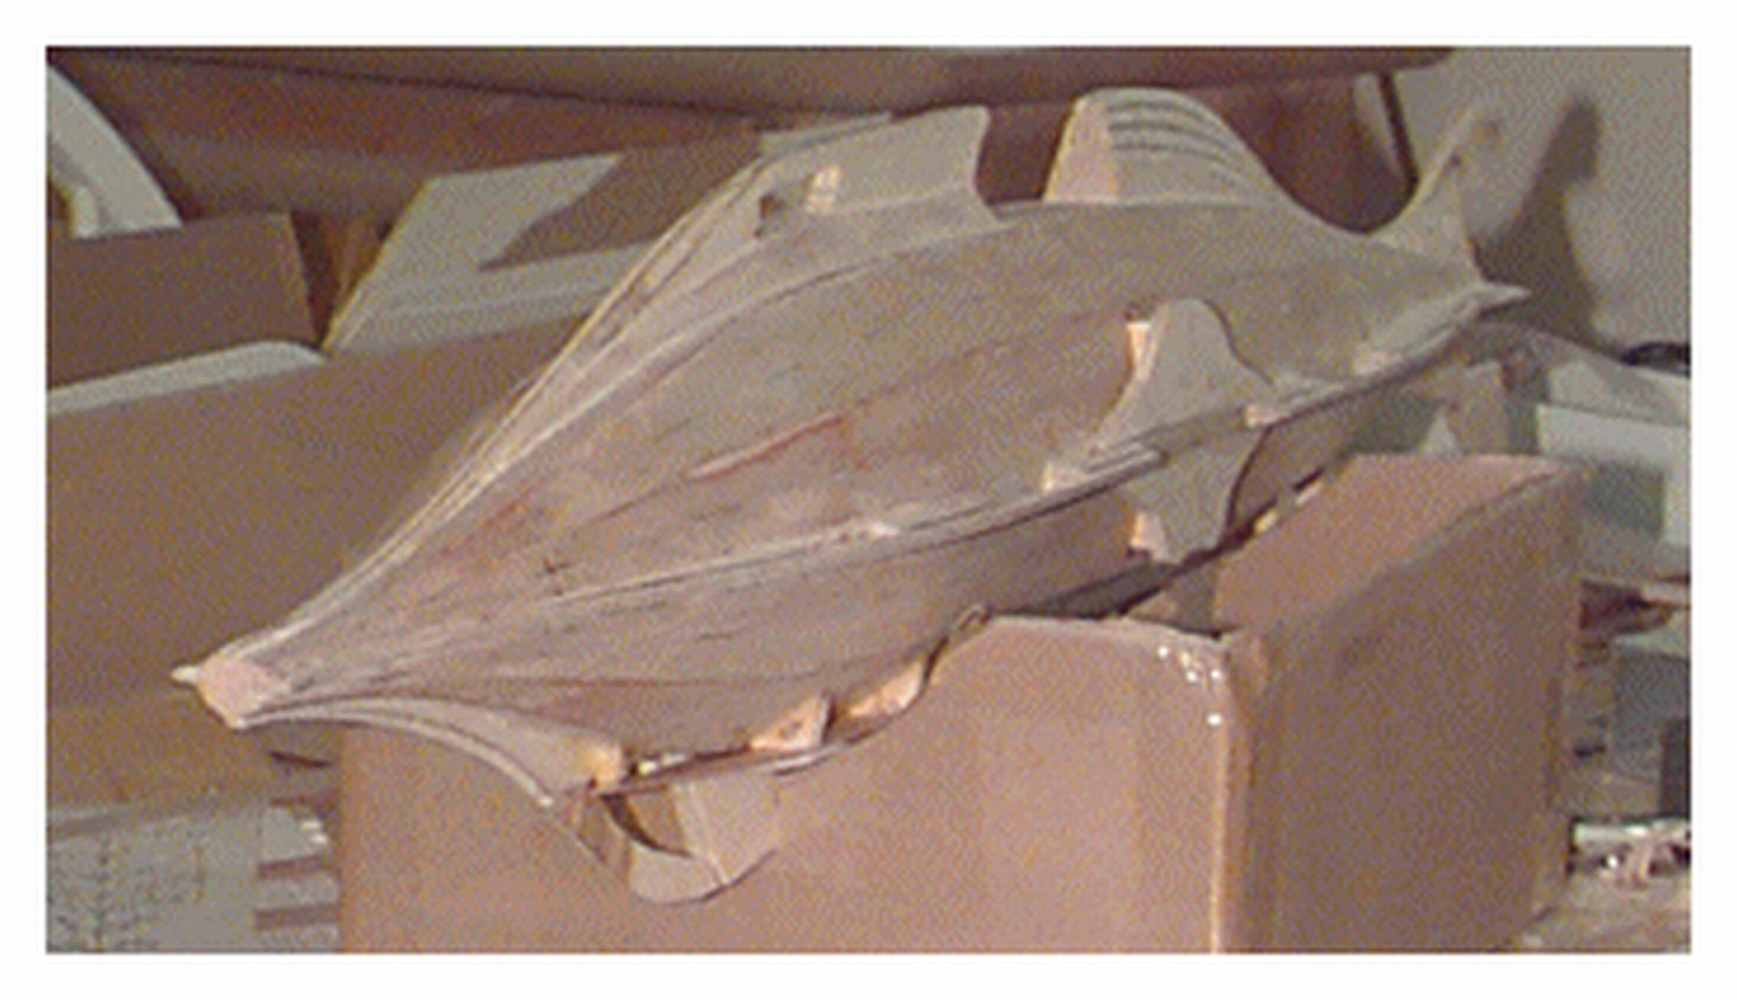 Underside of the model showing the built out and taper of the rear fin. The lines on the fin are the various layers of wood and plywood areas